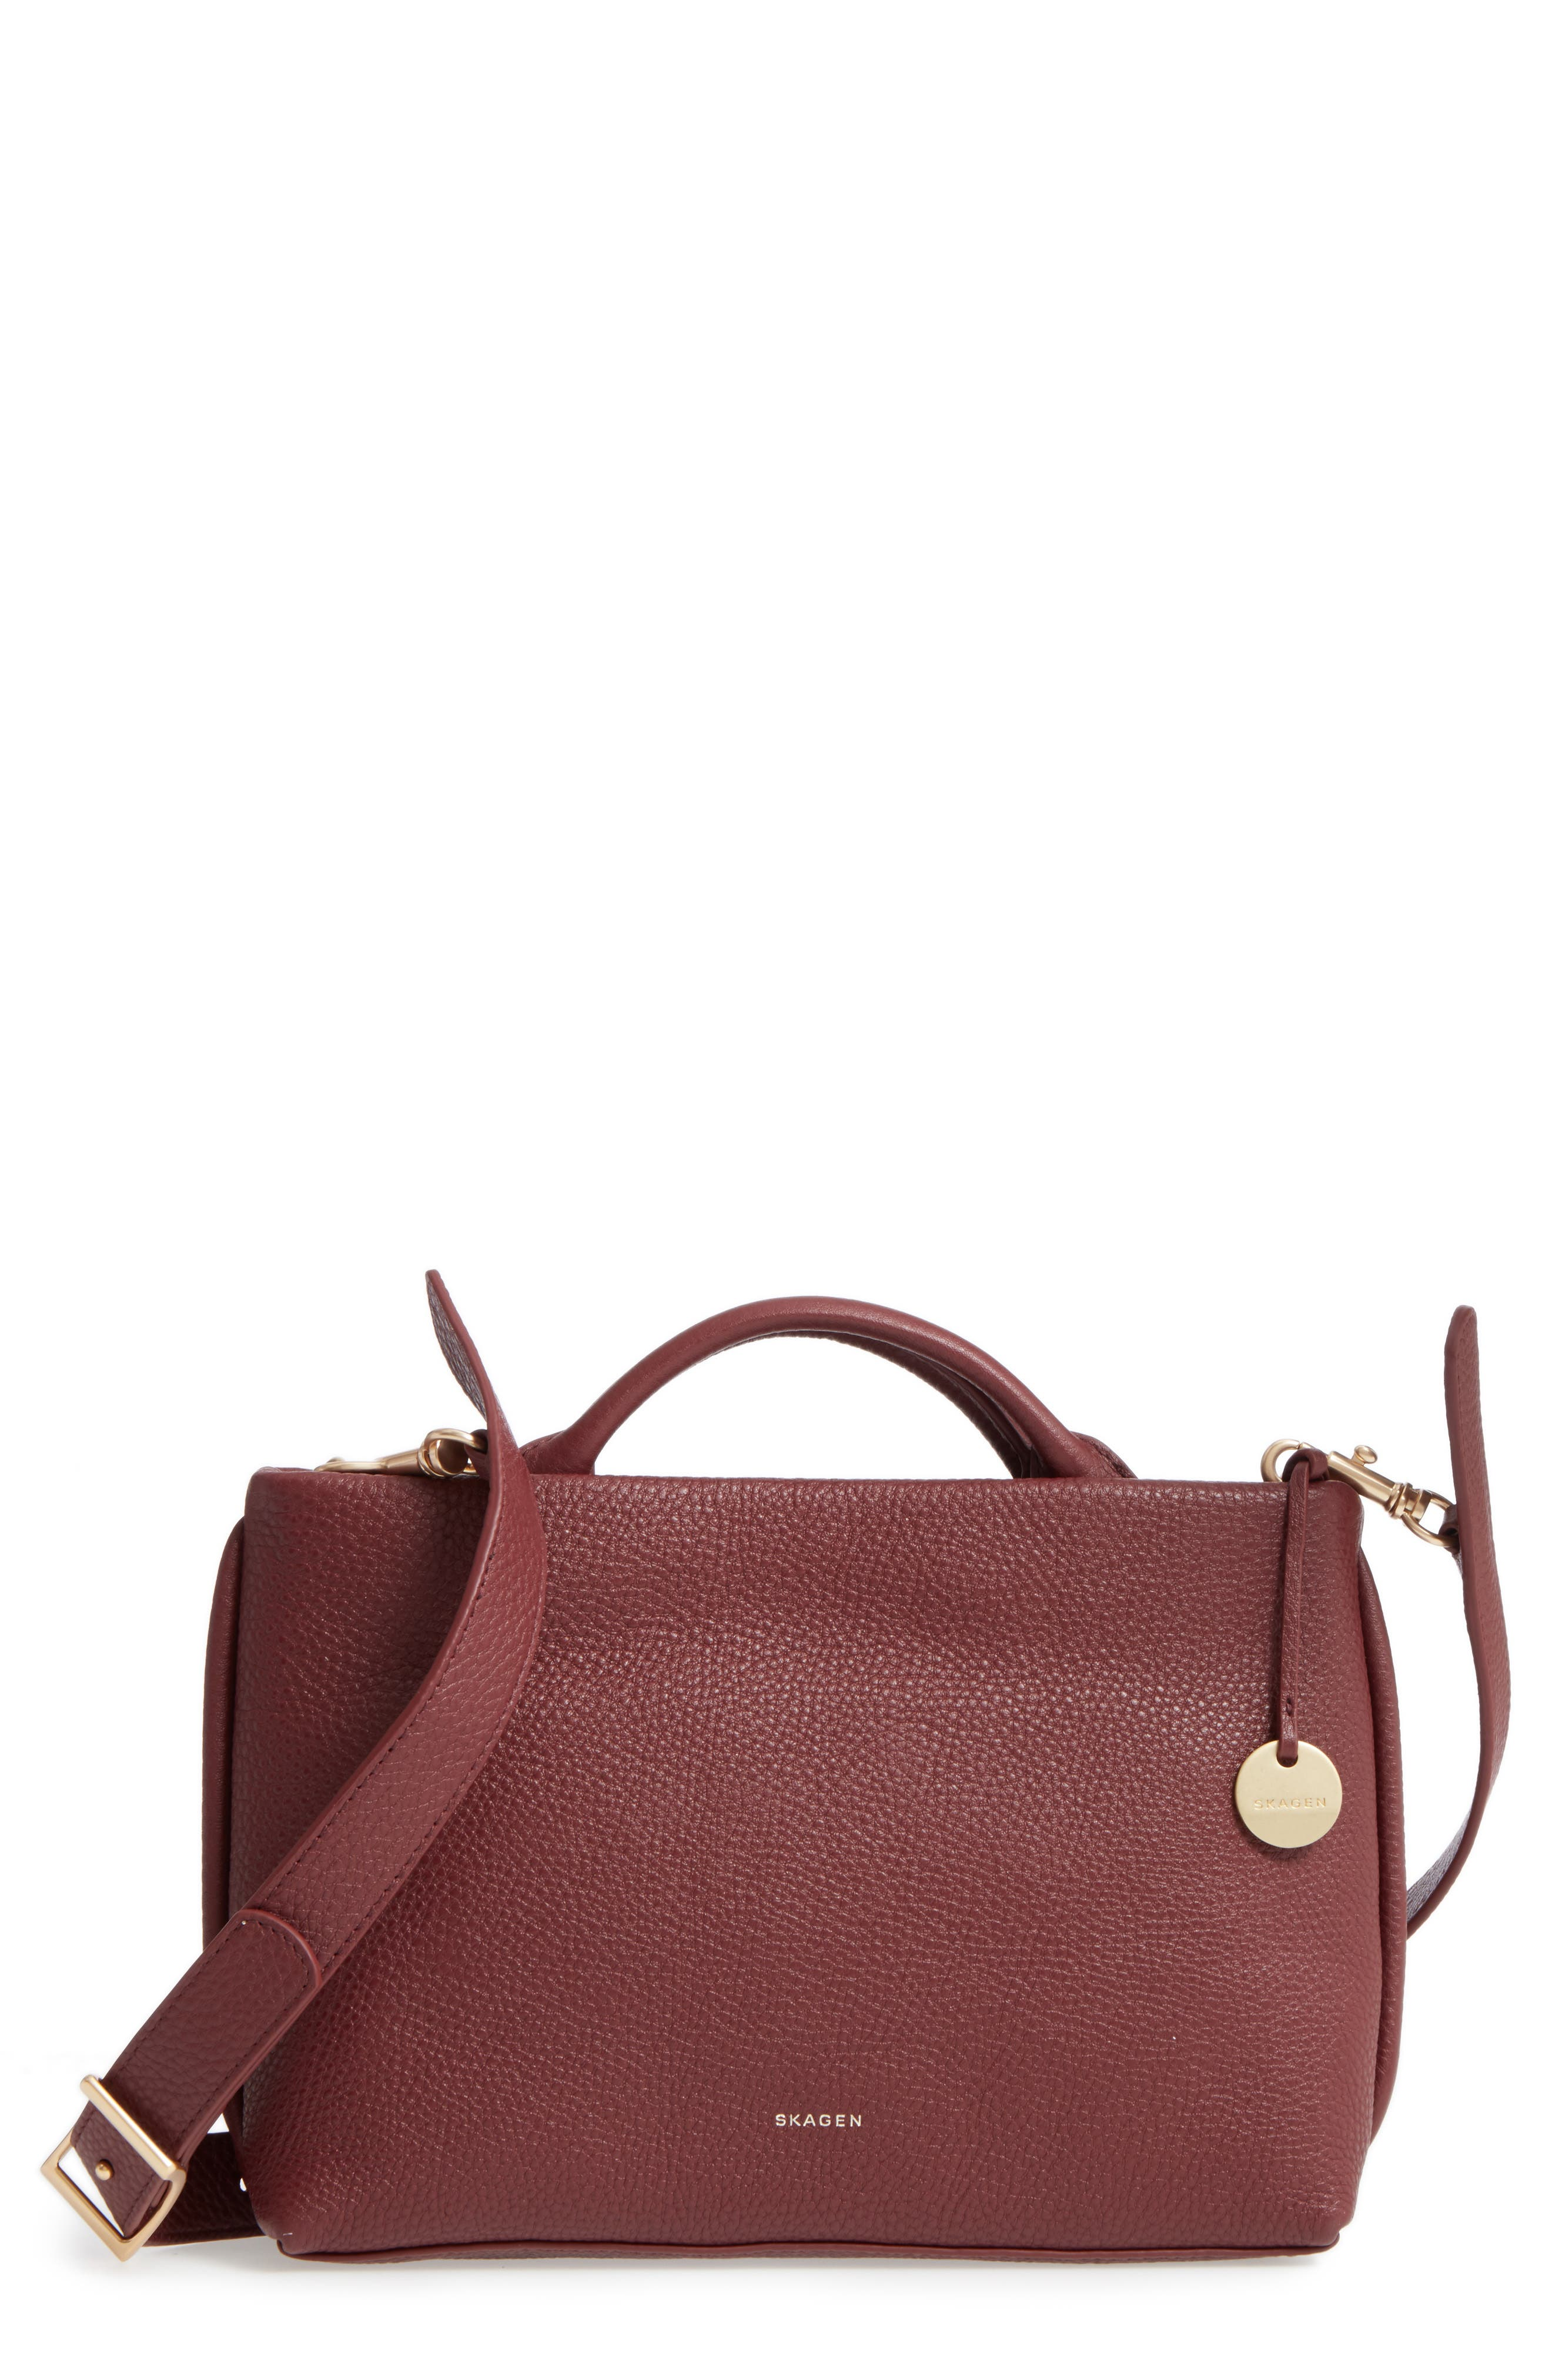 Main Image - Skagen Mikkeline Mini Leather Satchel